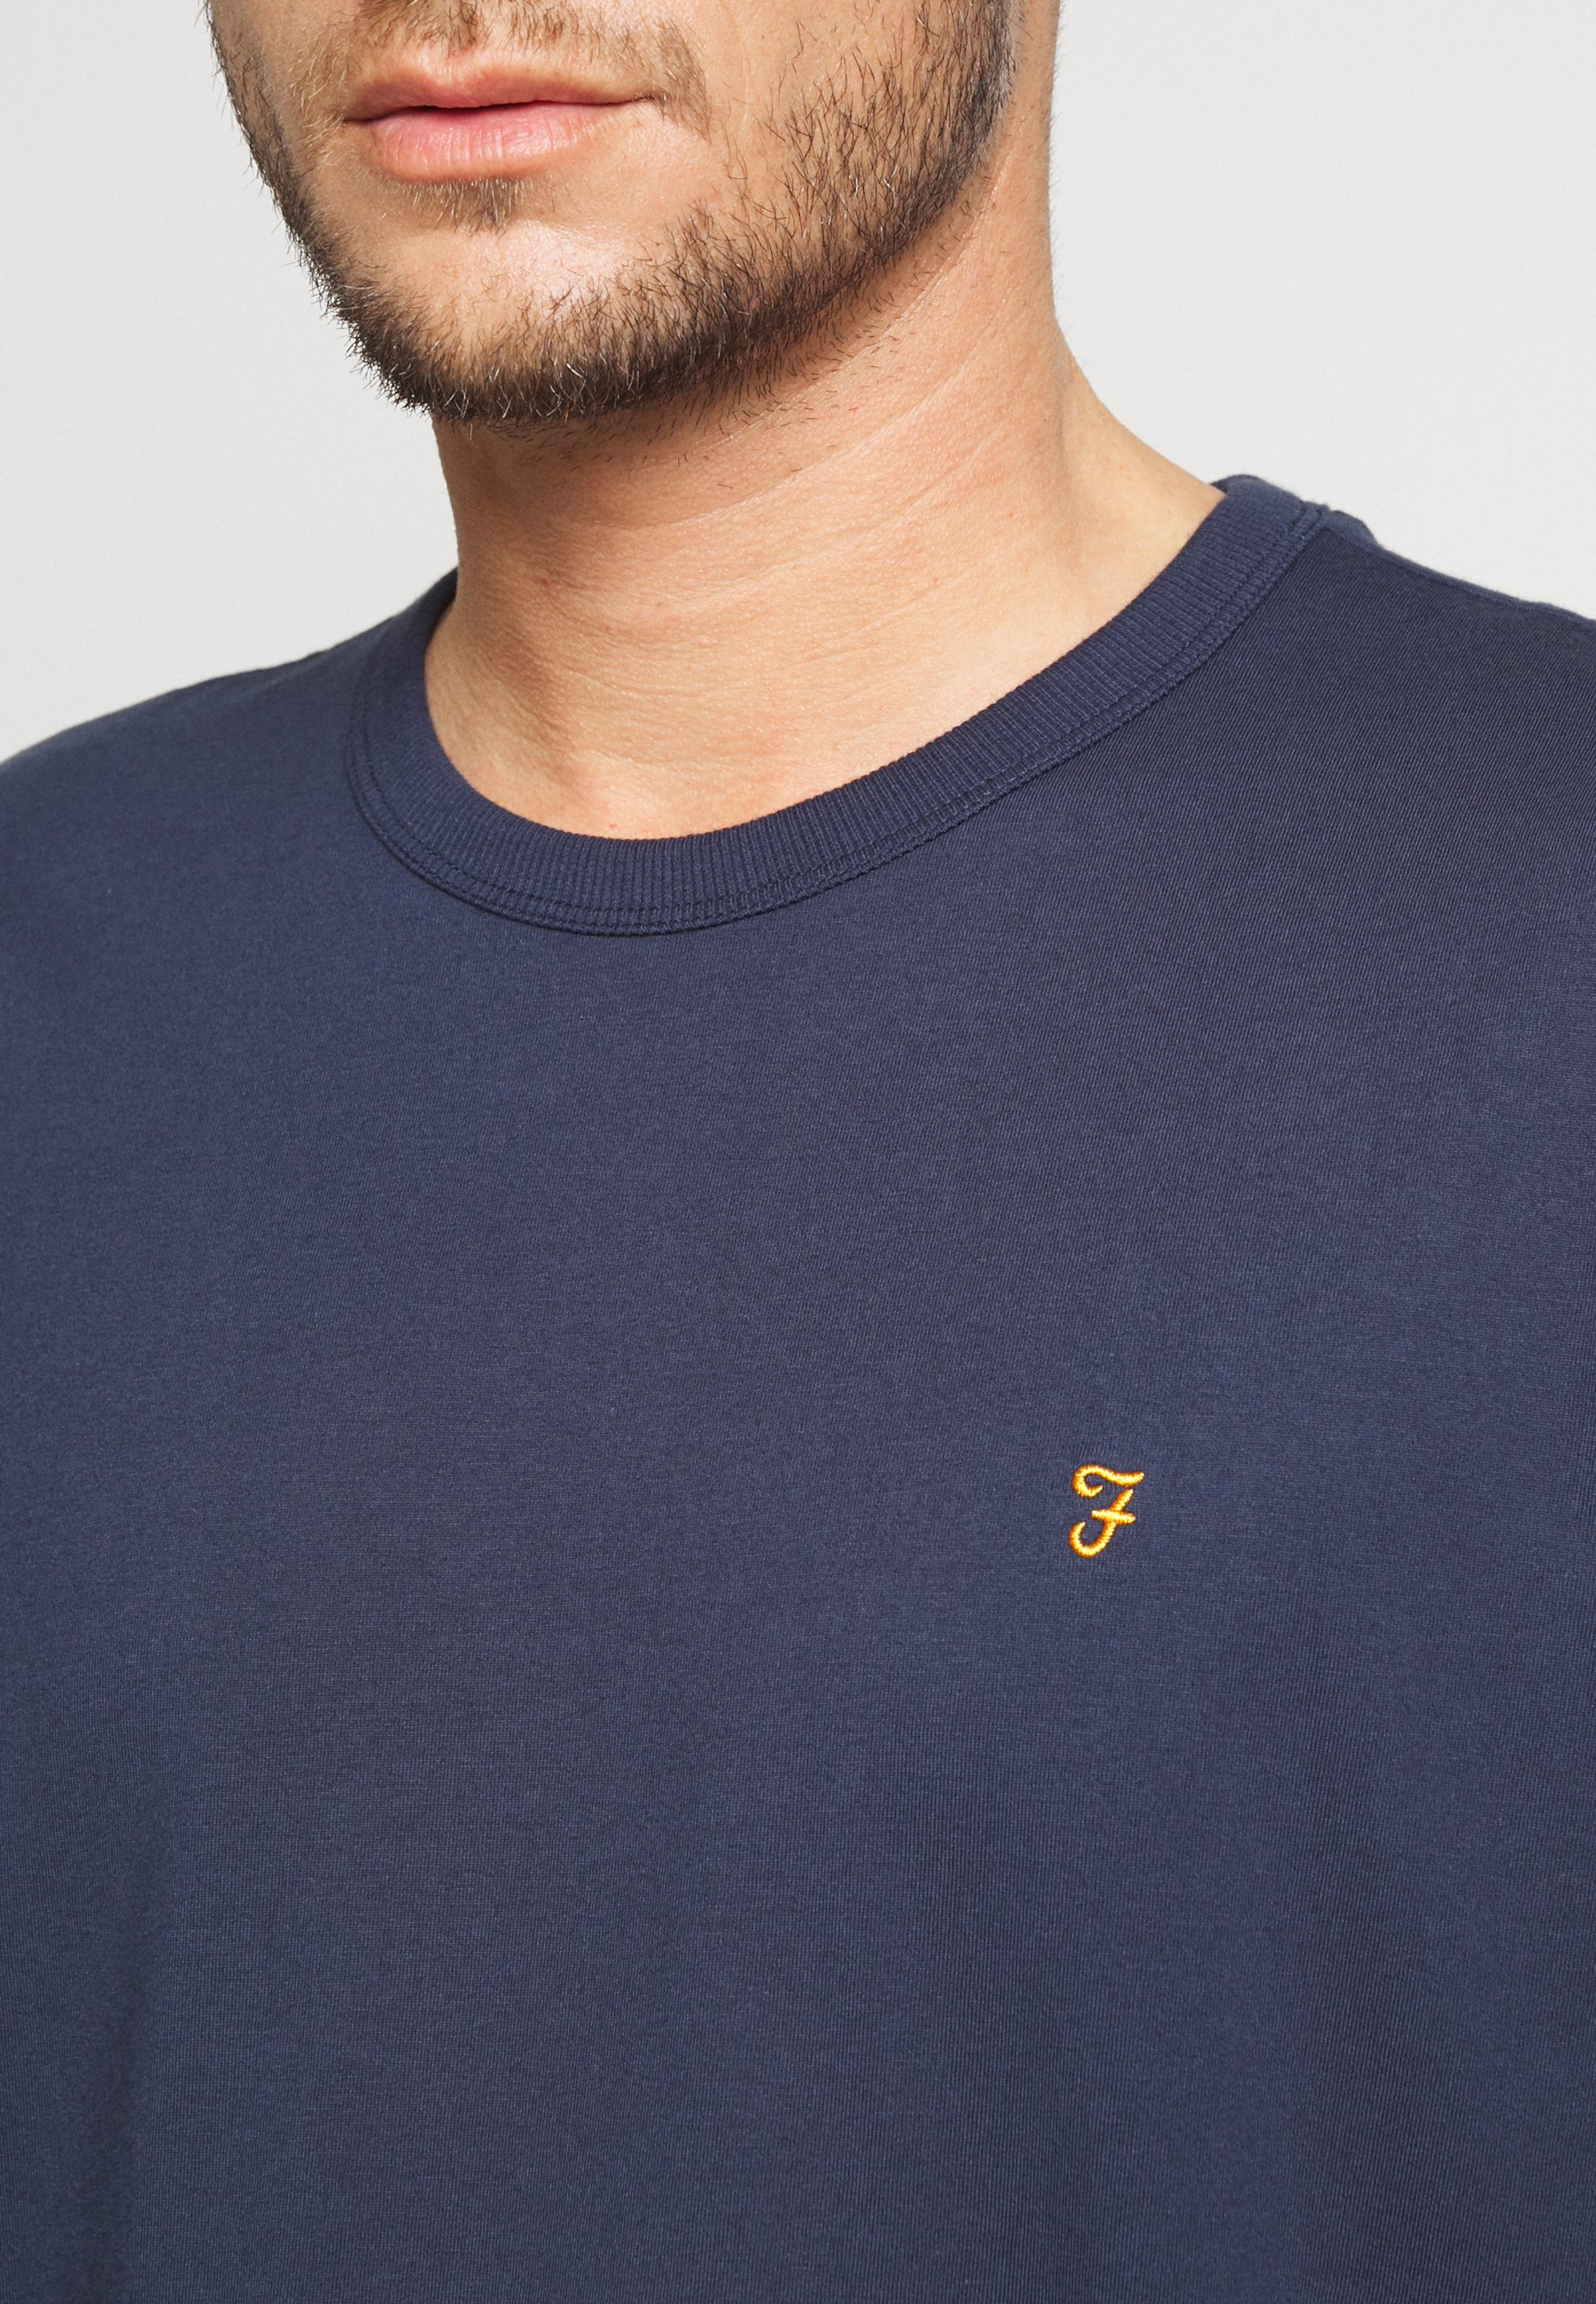 Farah COLLIER REGULAR FIT TEE - Basic T-shirt - yale um2C3